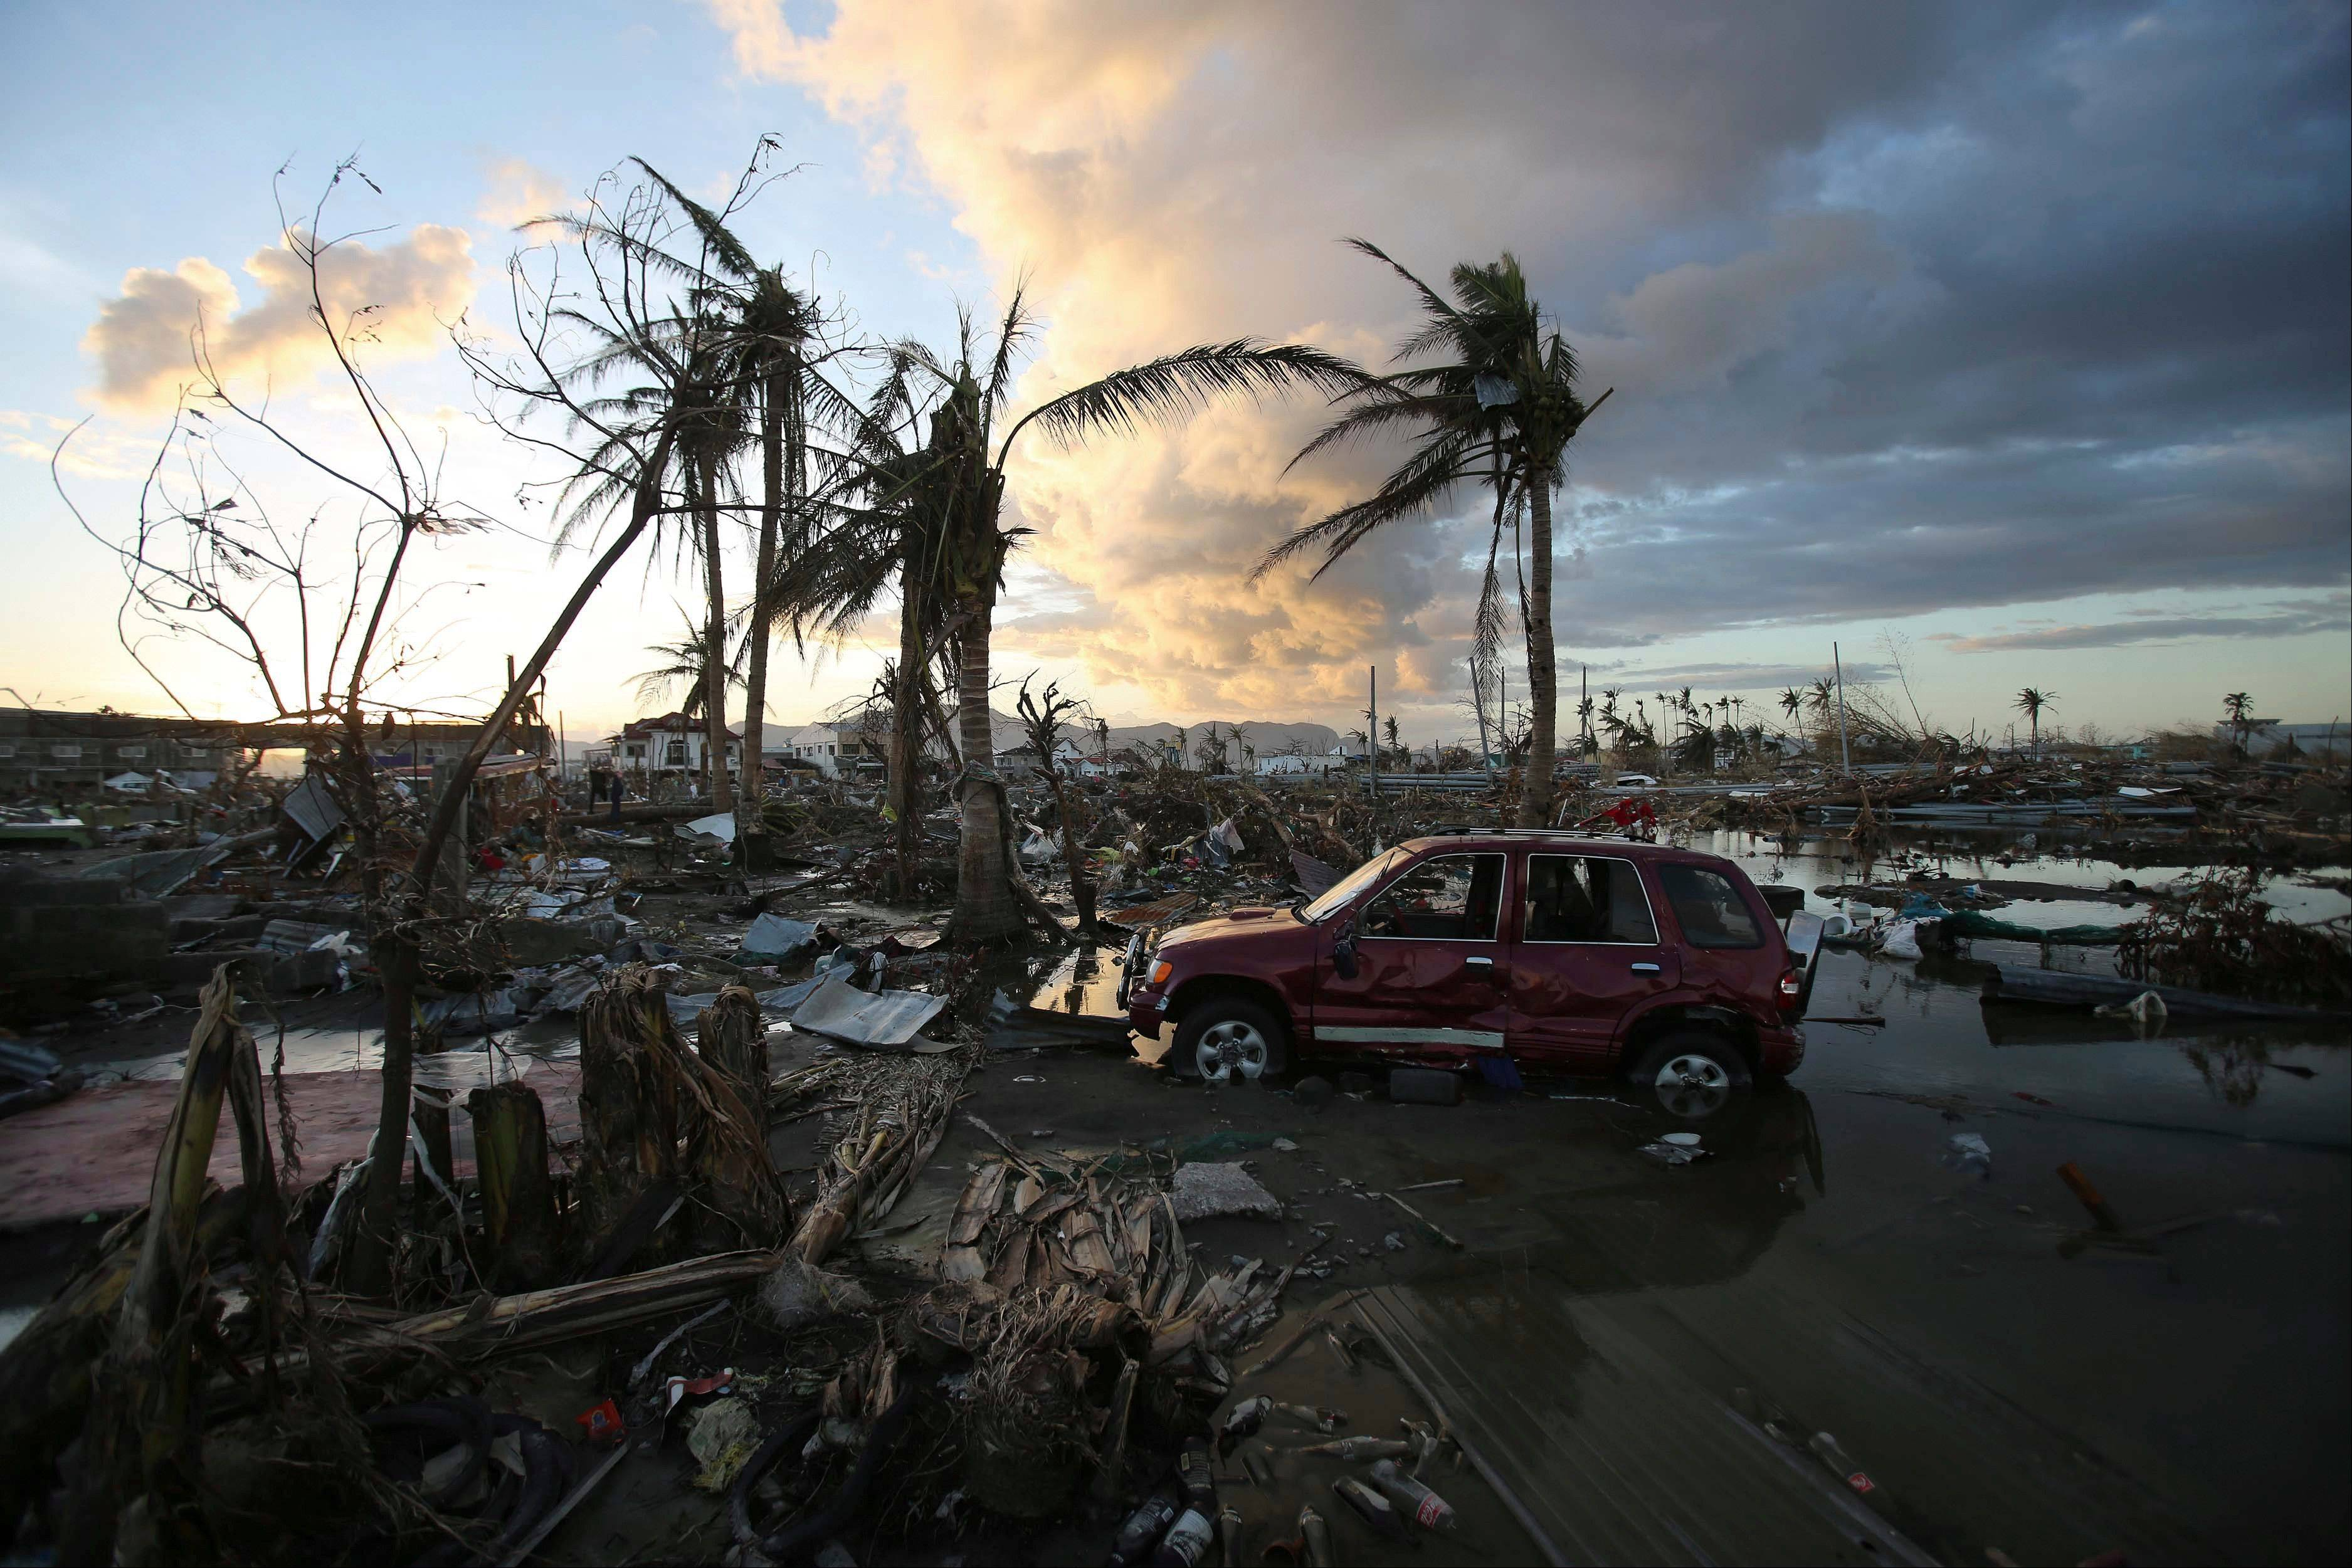 As the sun sets, it lights the sky over the area devastated by Typhoon Haiyan, in Tacloban, central Philippines, Friday, Nov. 15, 2013. Typhoon Haiyan, one of the most powerful storms on record, hit the country's eastern seaboard Nov. 8, leaving a wide swath of destruction.